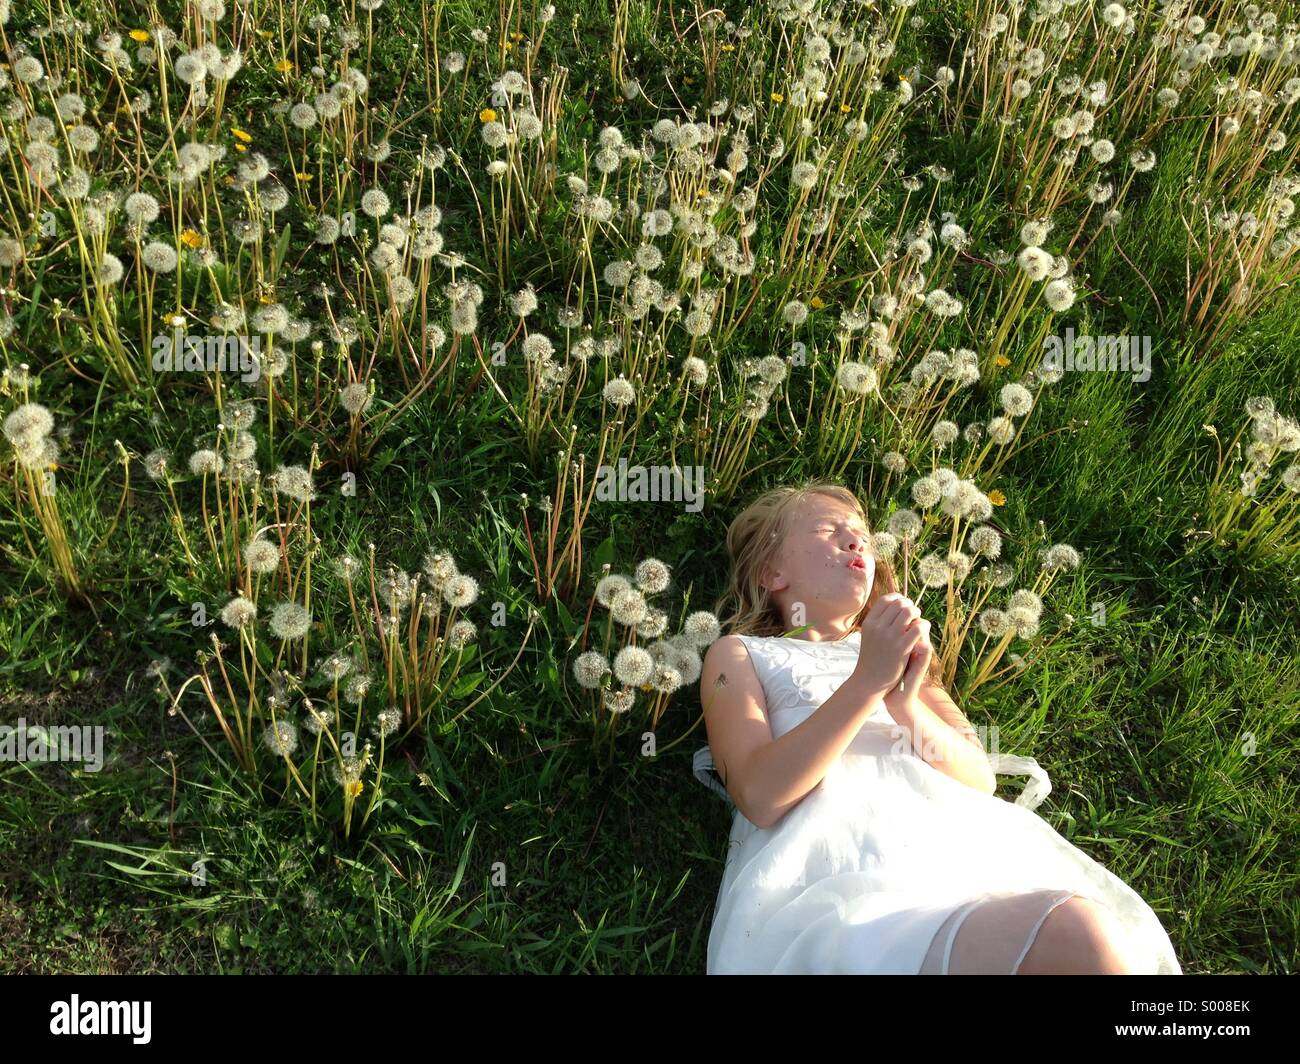 A girl in a field of dandelions blows the seeds into the air. - Stock Image